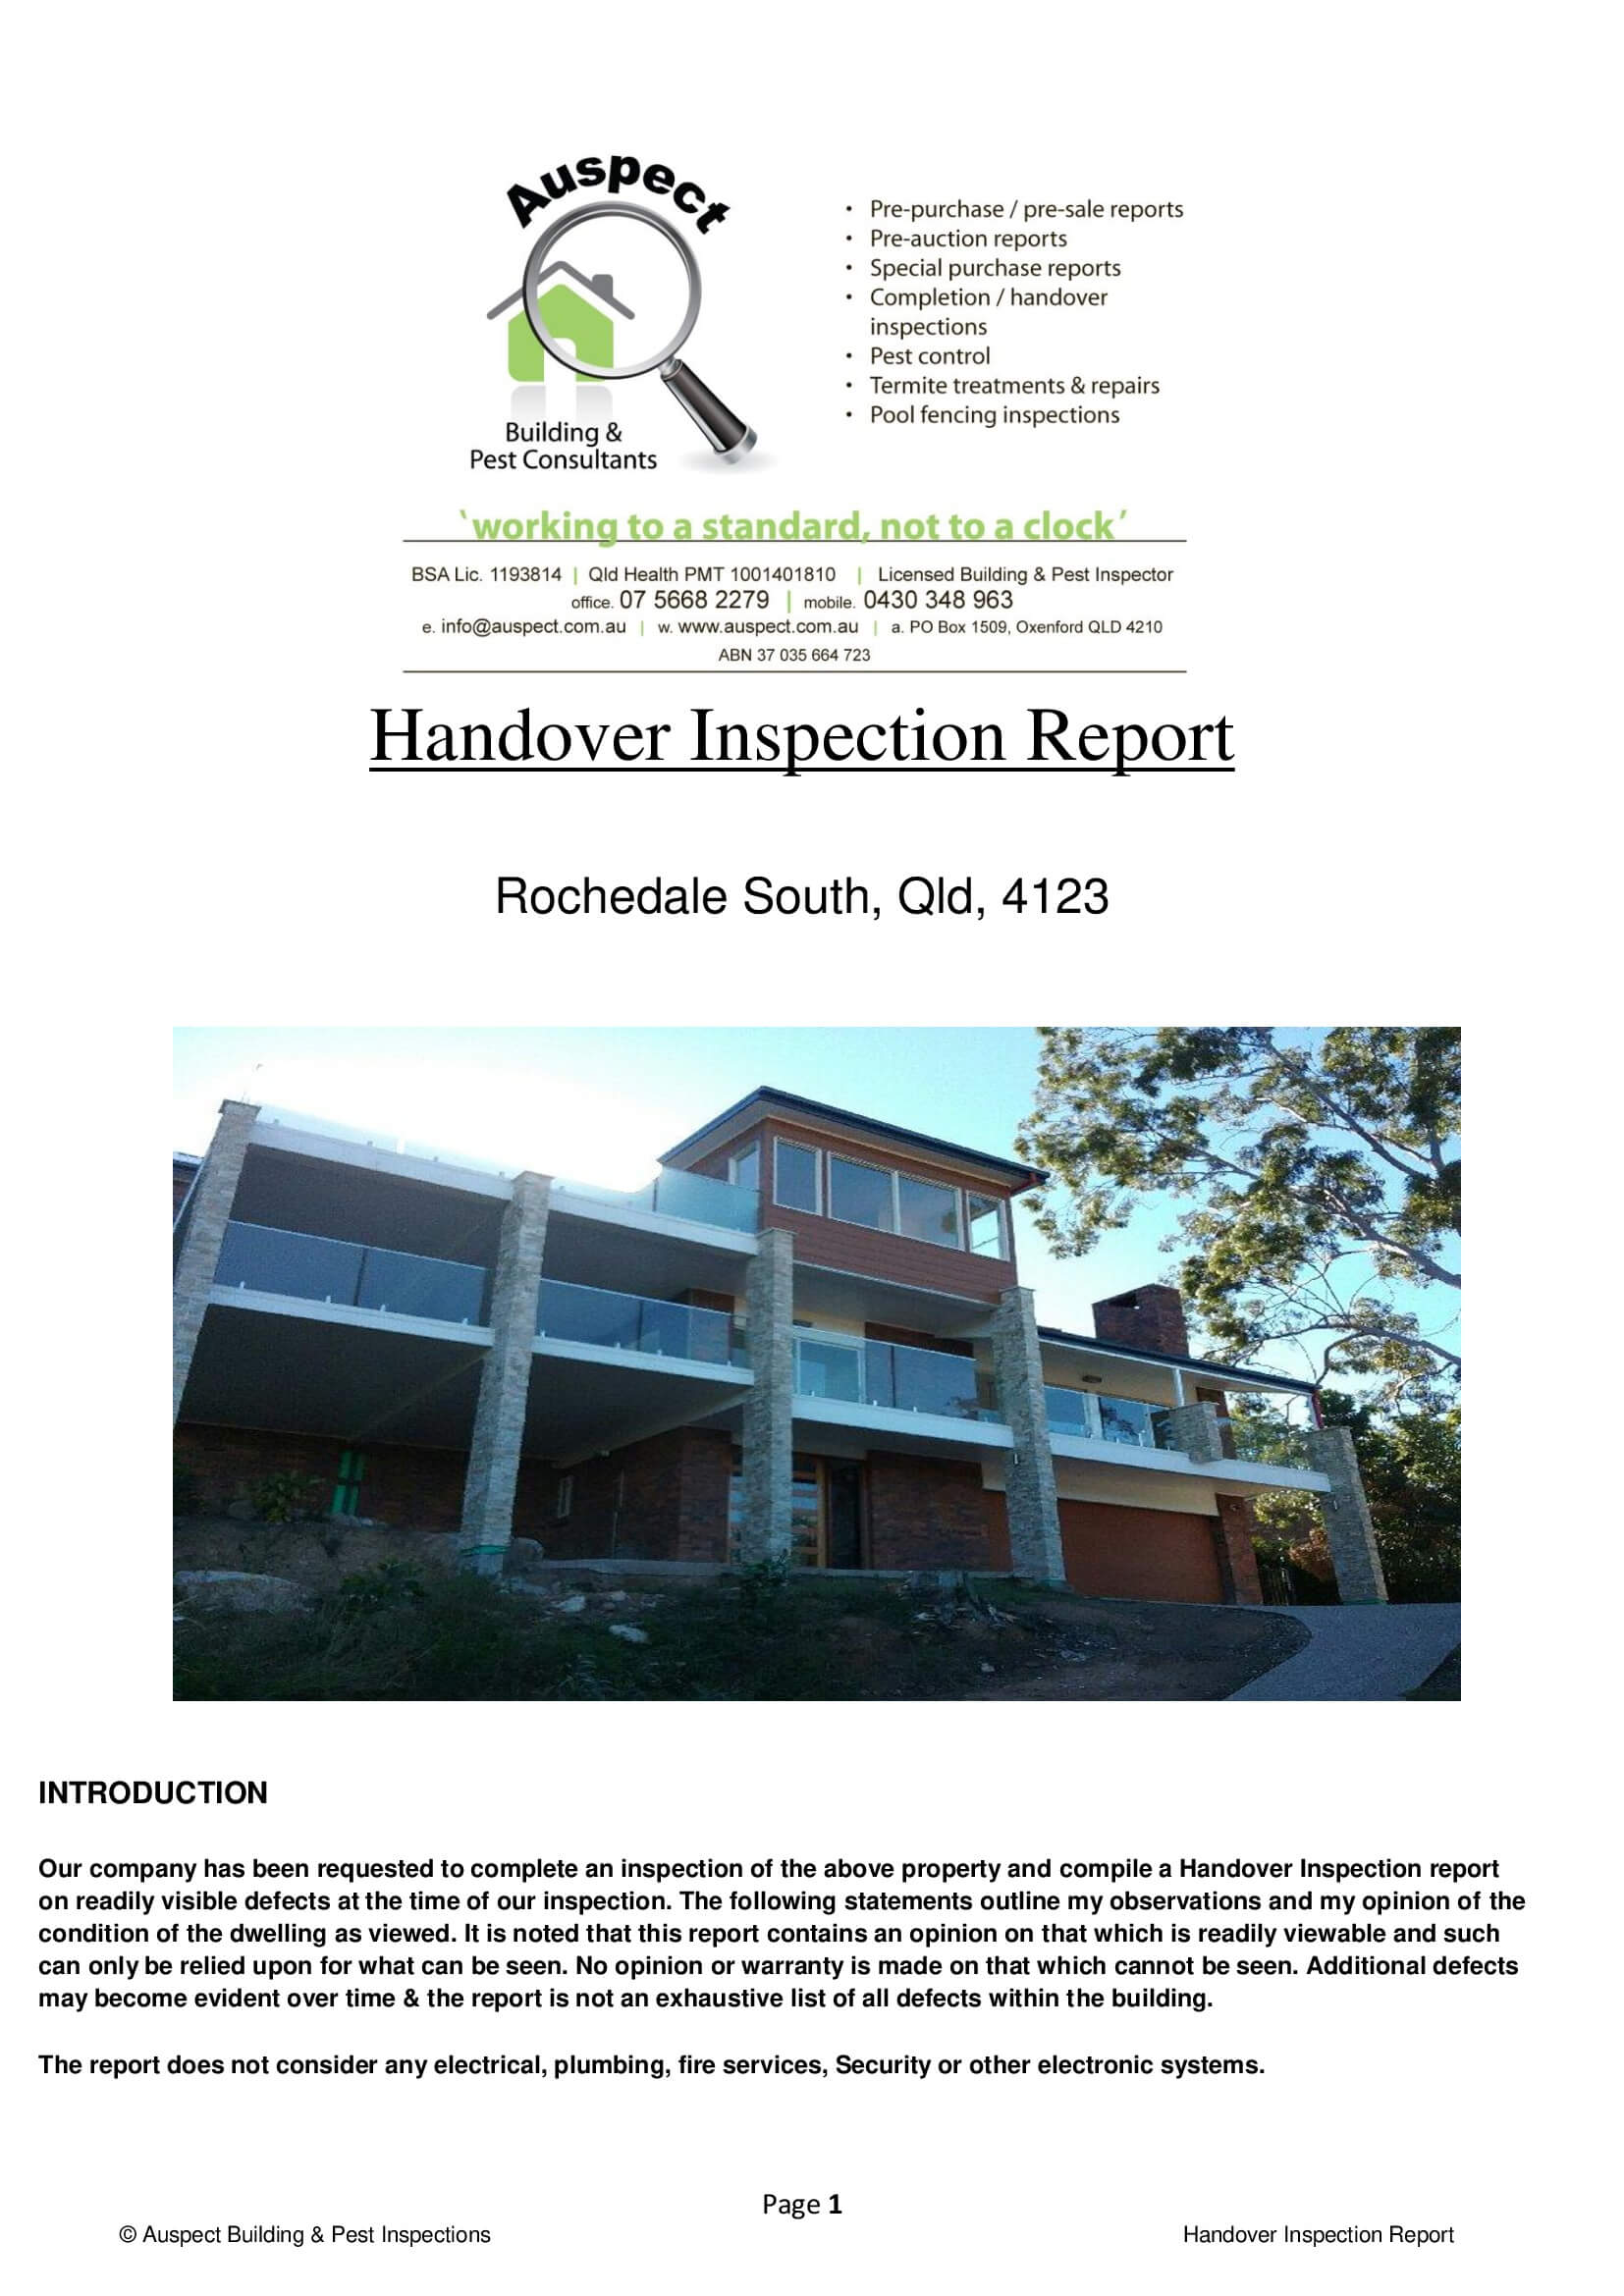 Sample Reports · Auspect Home Inspections throughout Pre Purchase Building Inspection Report Template